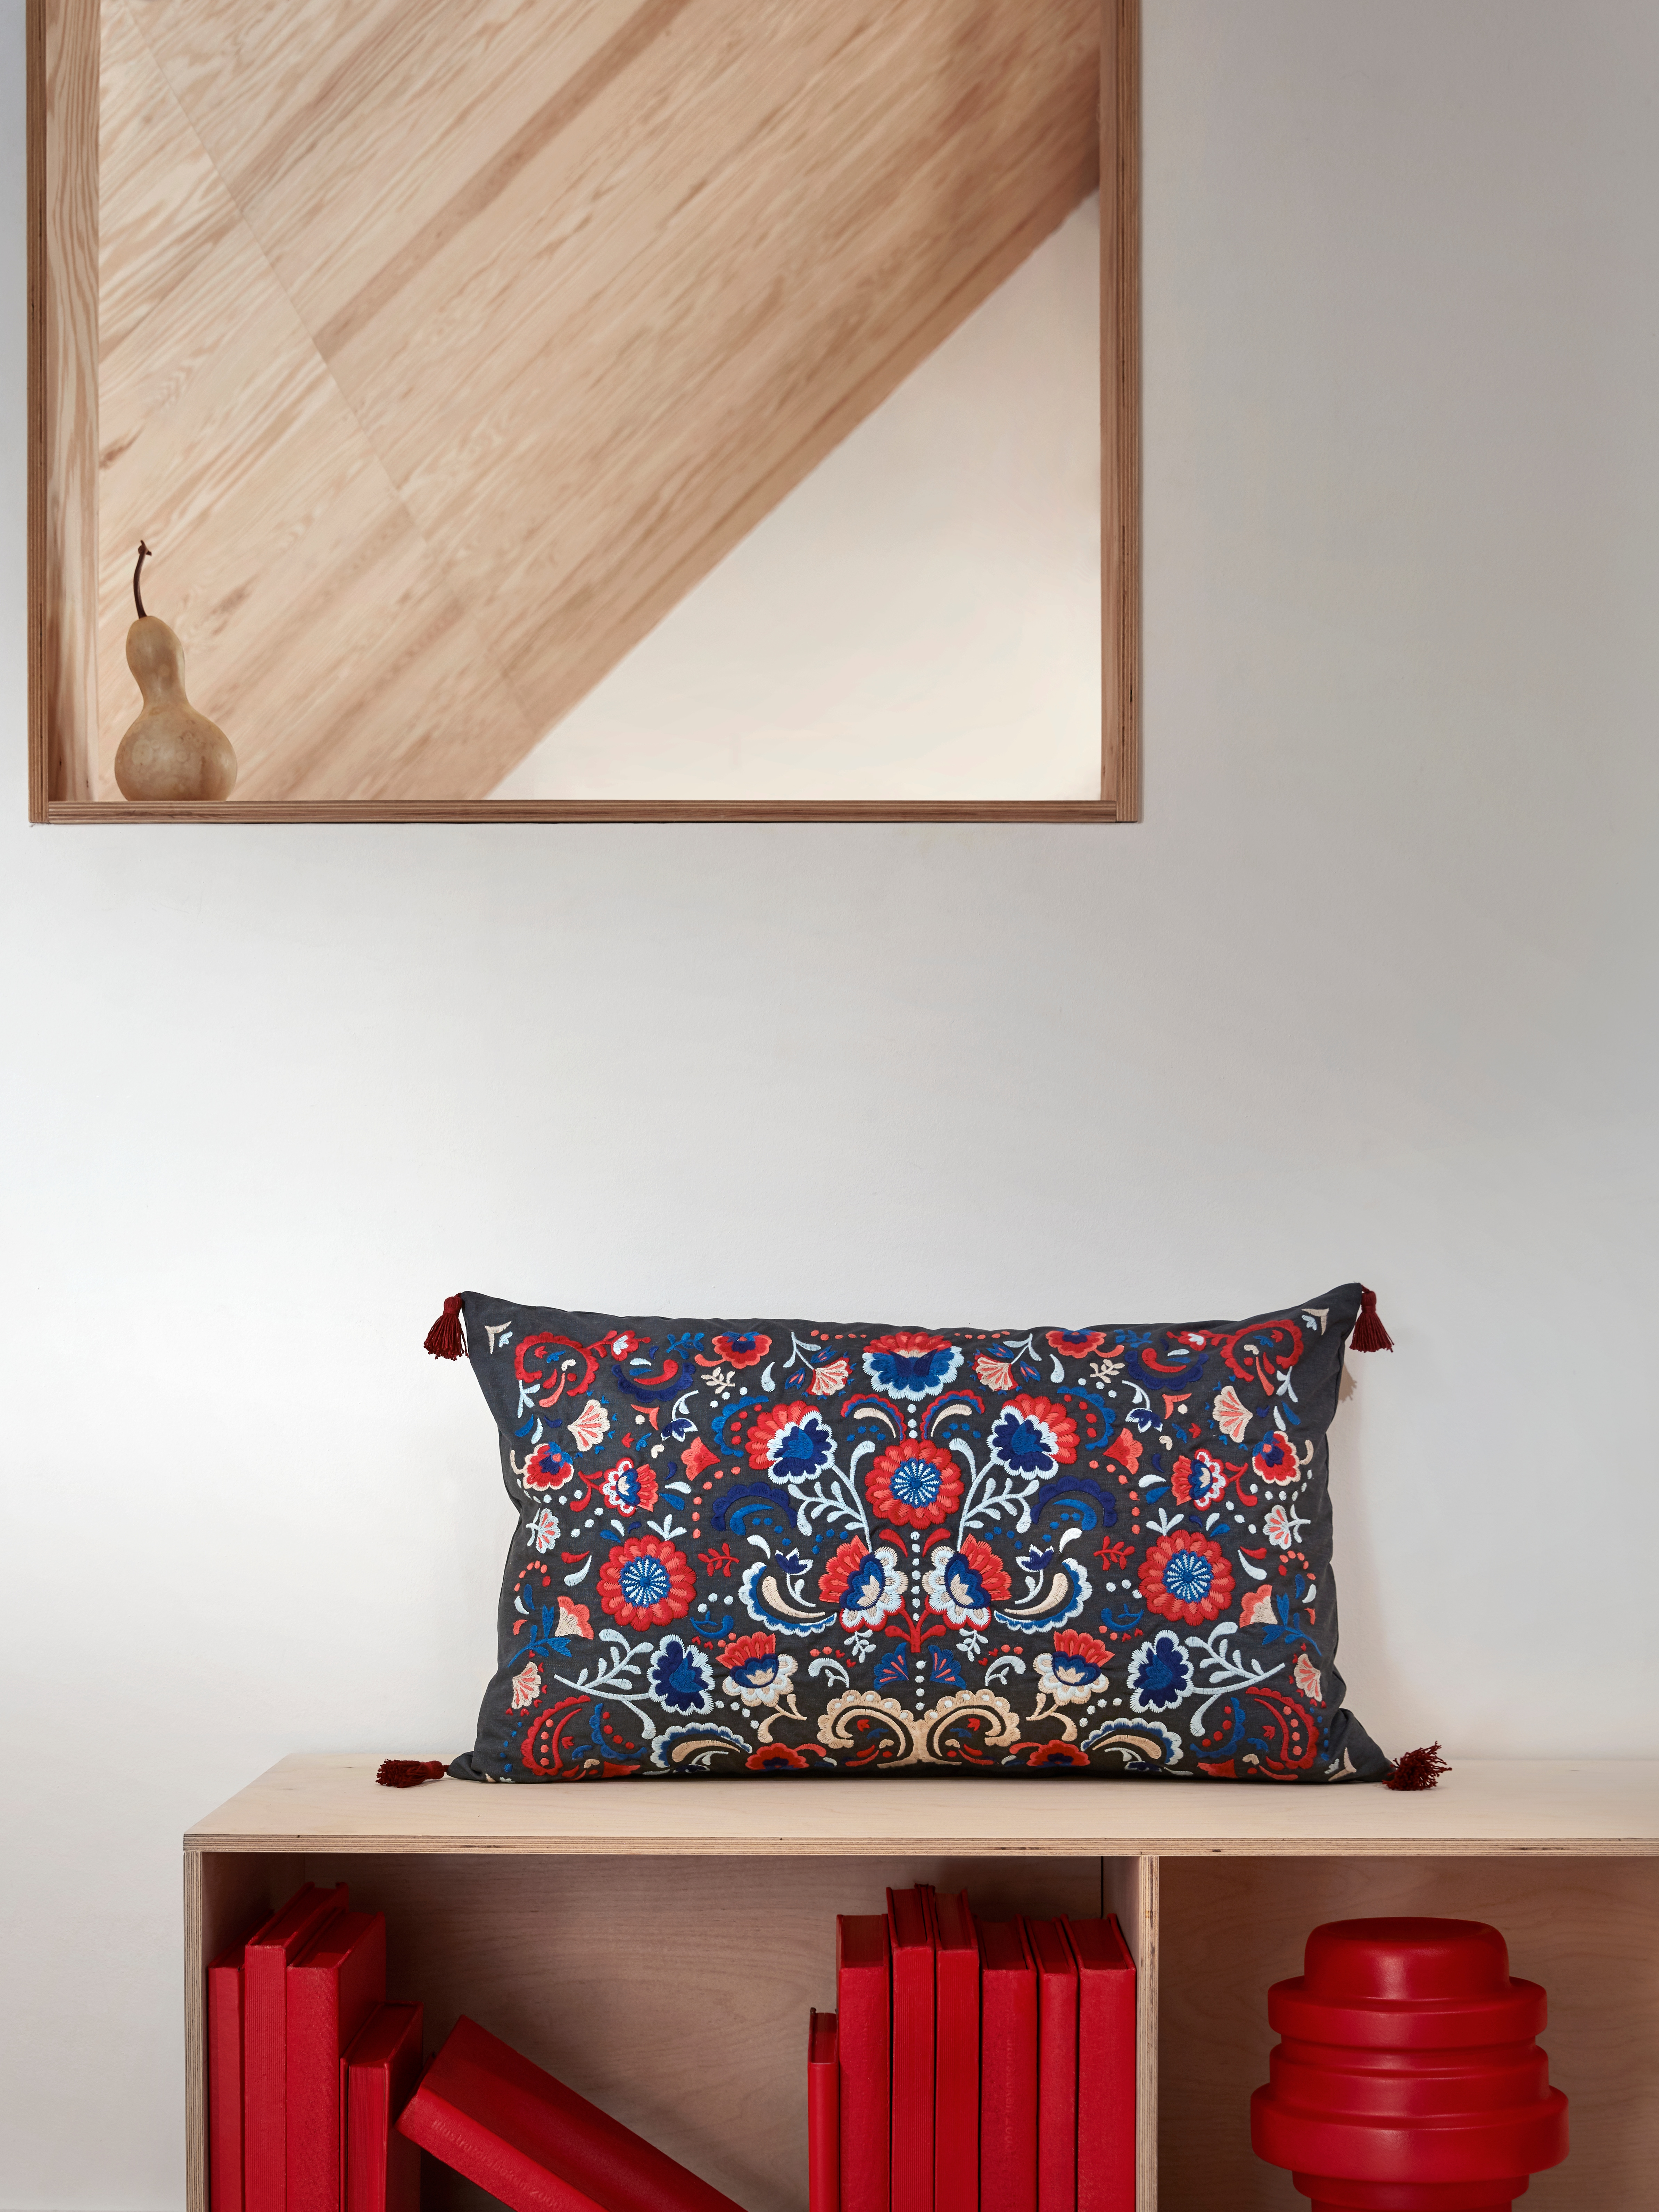 Dark rectangular SKOGSKORN cushion with multi-colored paisley embroidery and red tassels; placed on a wooden hallway bench.